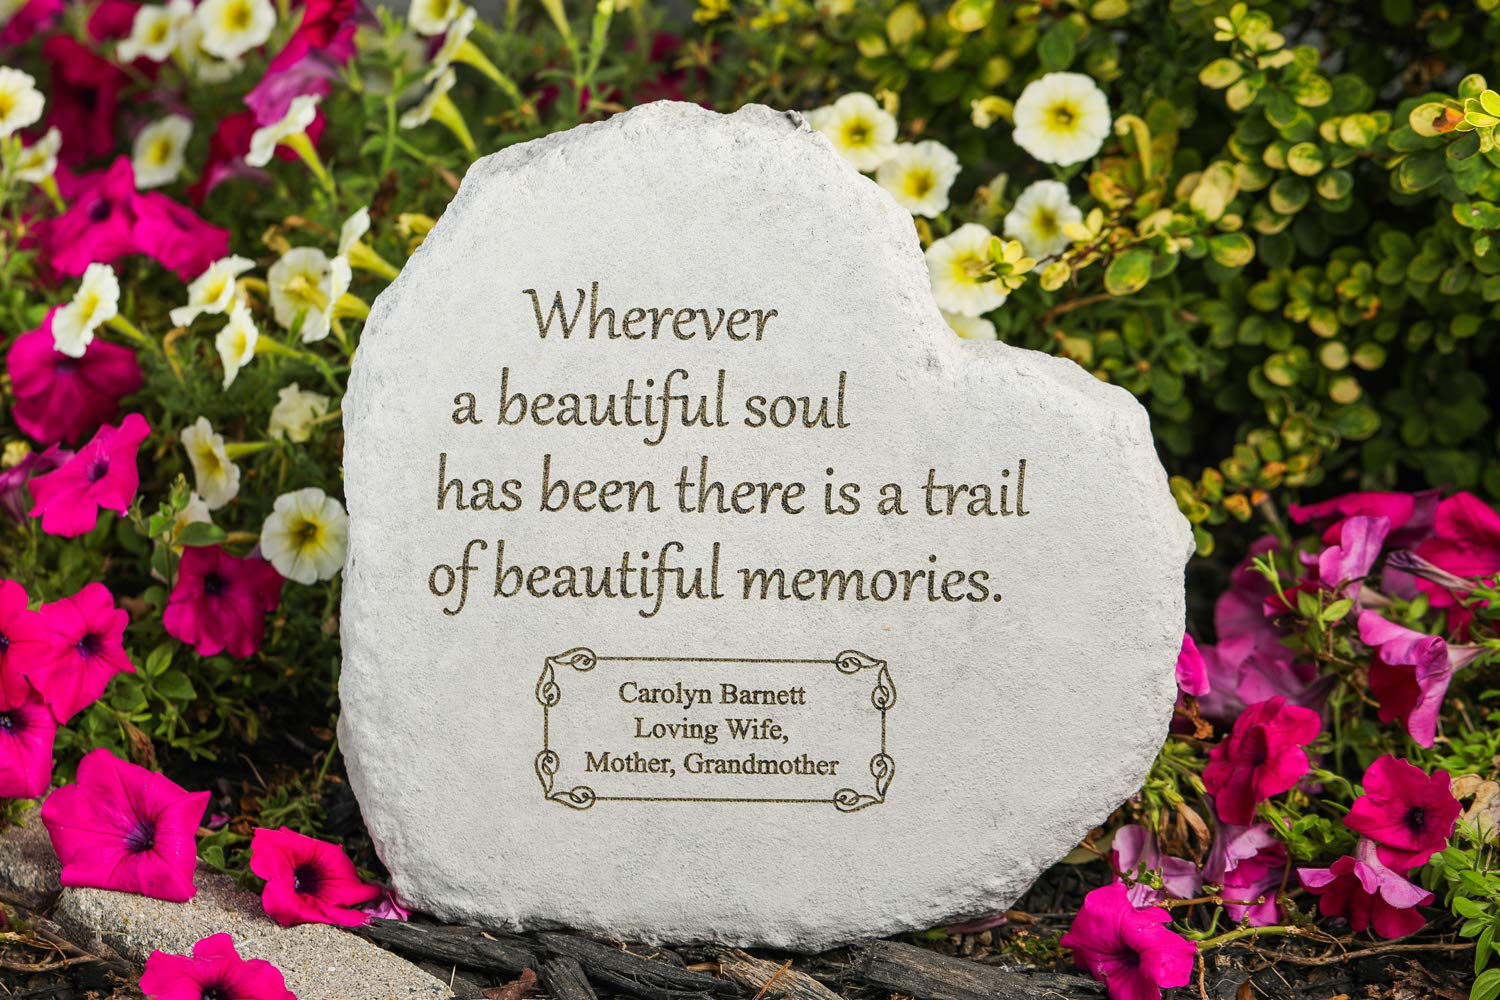 Kay Berry Inc Wherever a Beautiful Soul. 12'' Heart - Personalized Memorial Stone - Fused Glass Stone